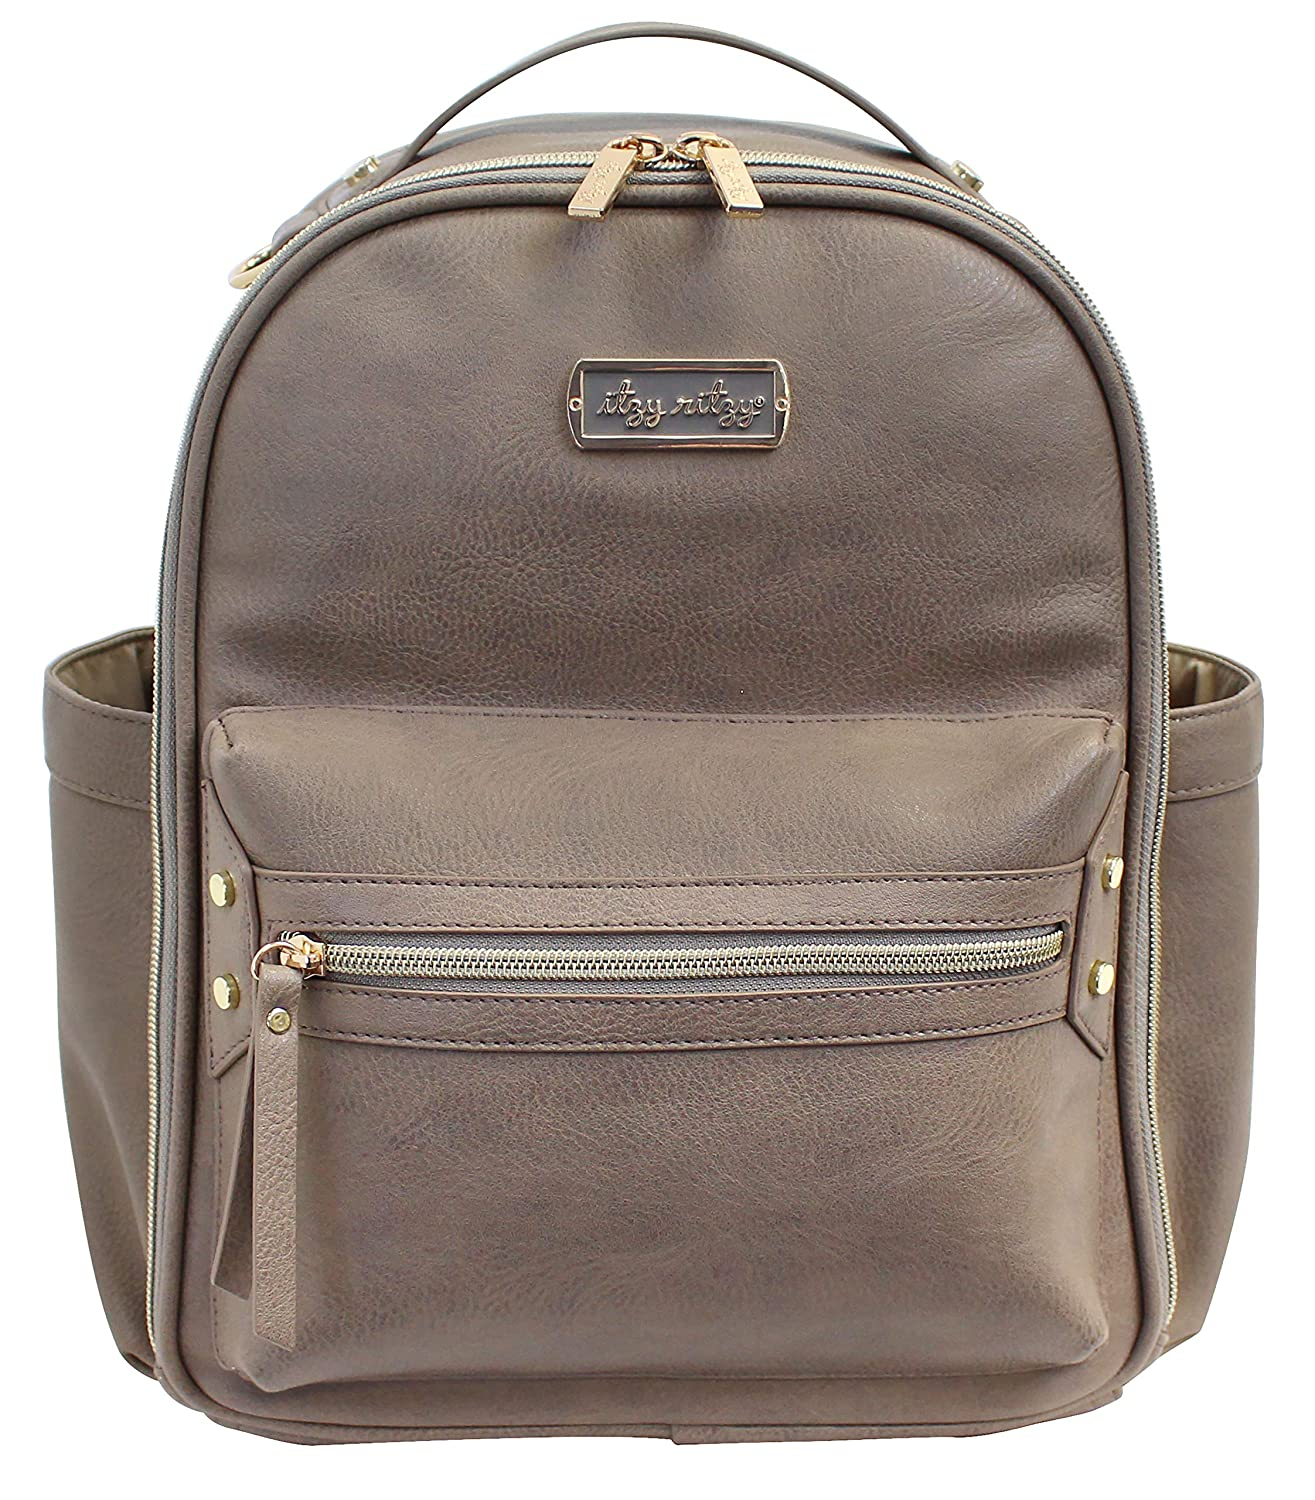 Taupe Itzy Mini Backpack Diaper bag